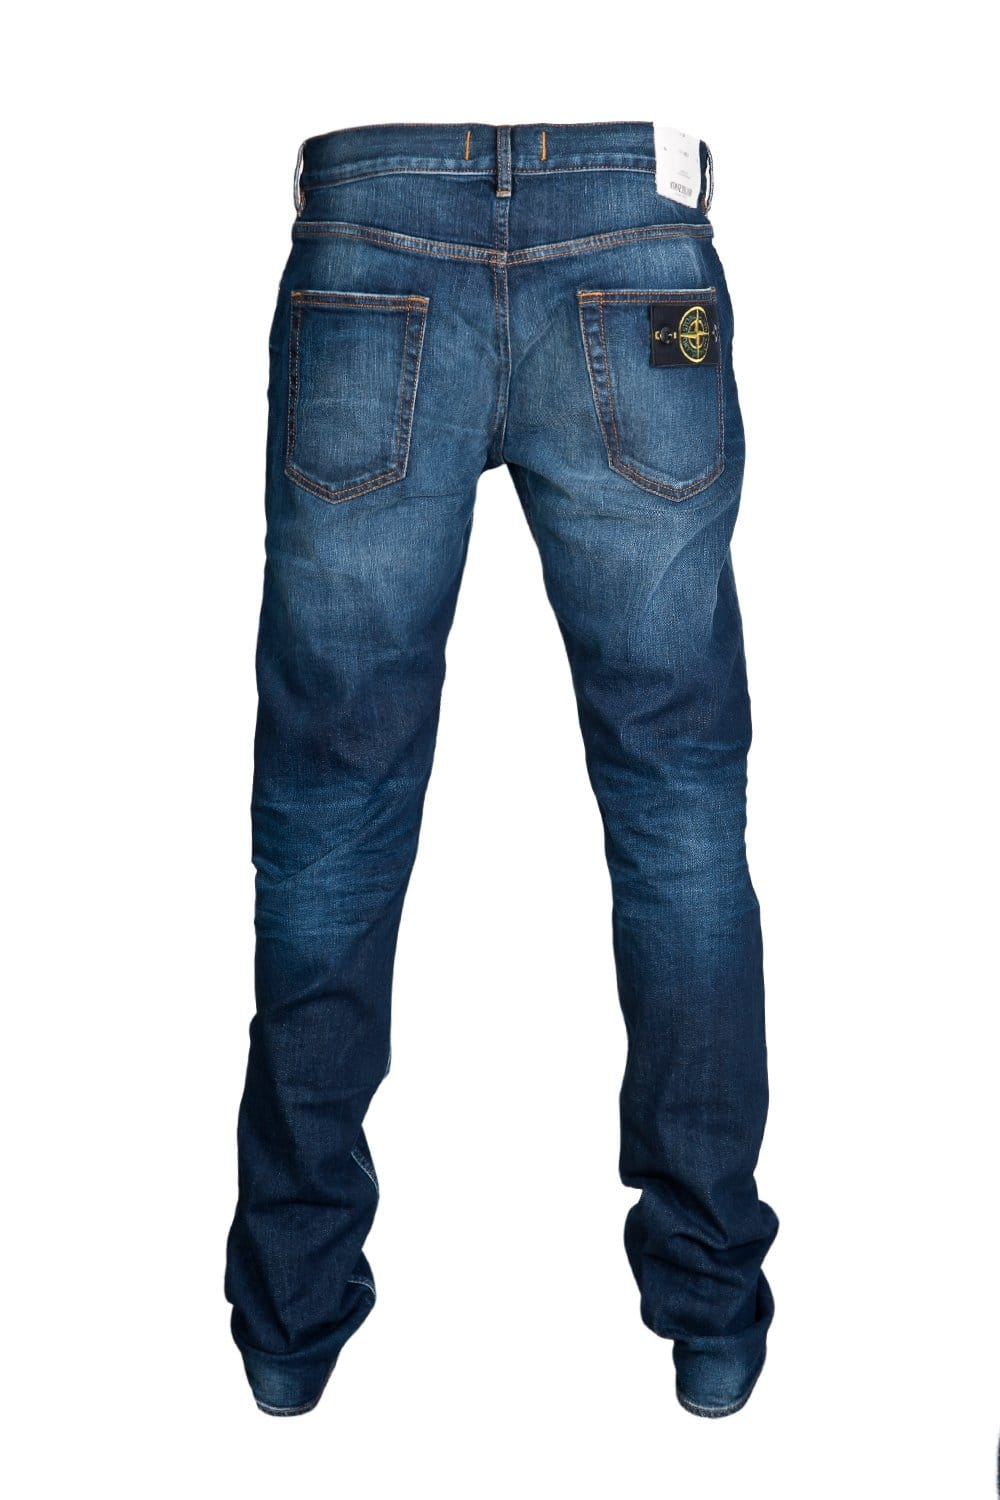 stone island regular fit denim jeans in indigo blue 6315j4bga stone island from sage clothing uk. Black Bedroom Furniture Sets. Home Design Ideas